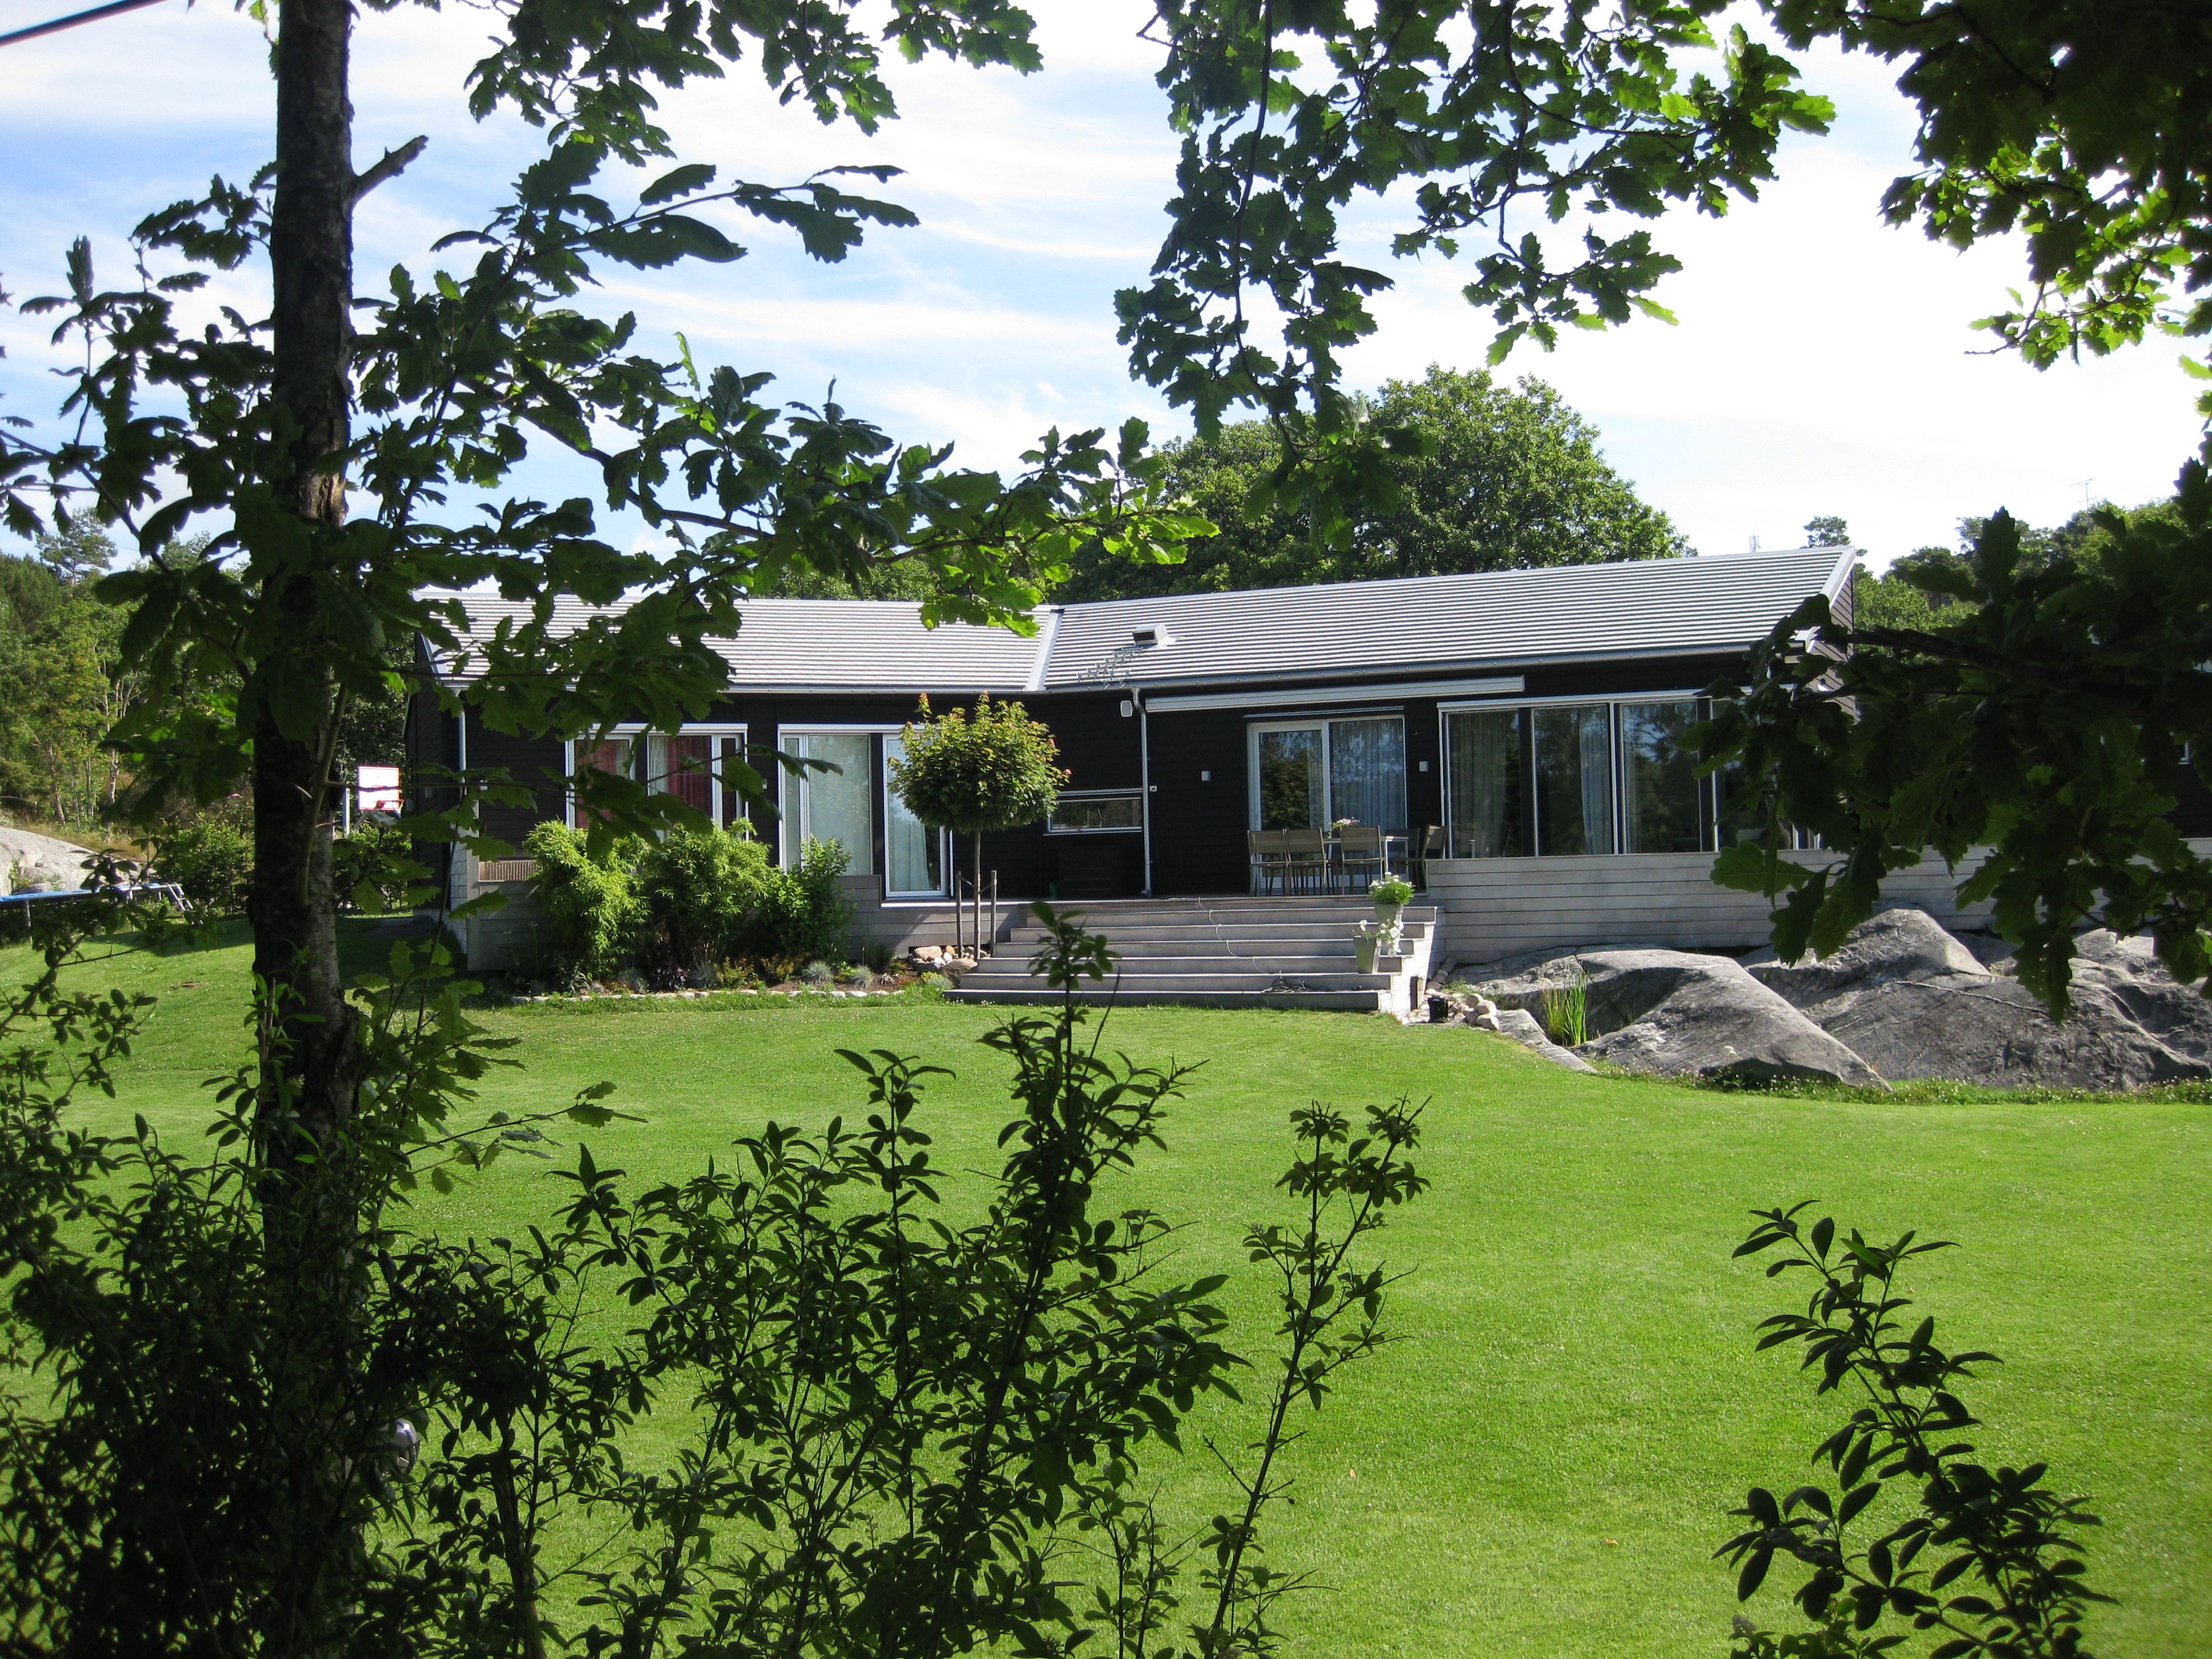 this is a seaside house in Sweden. Like the colour scheme with black cladding, and silver decking.